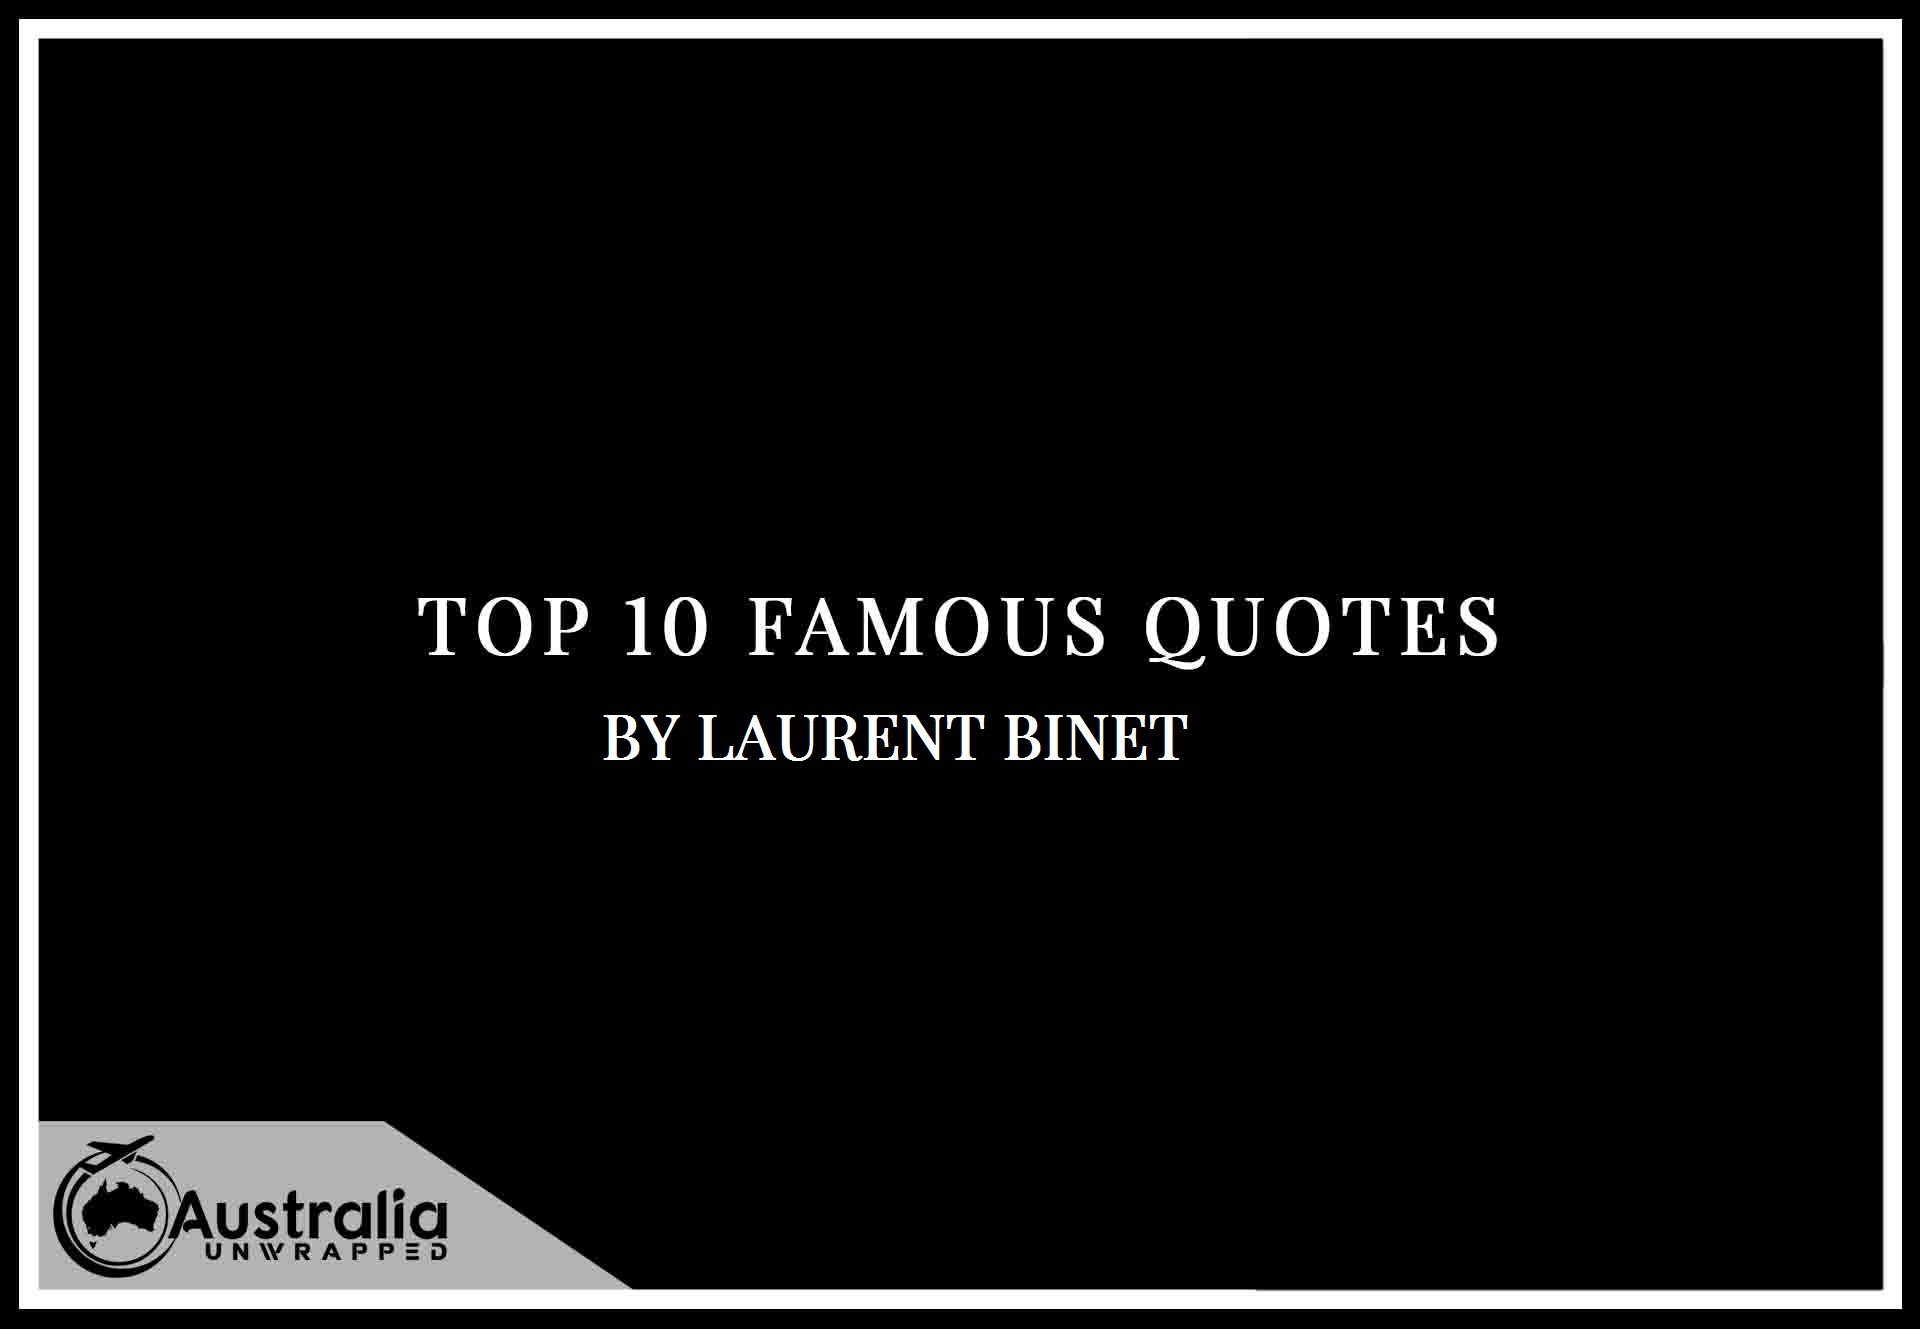 Laurent Binet's Top 10 Popular and Famous Quotes